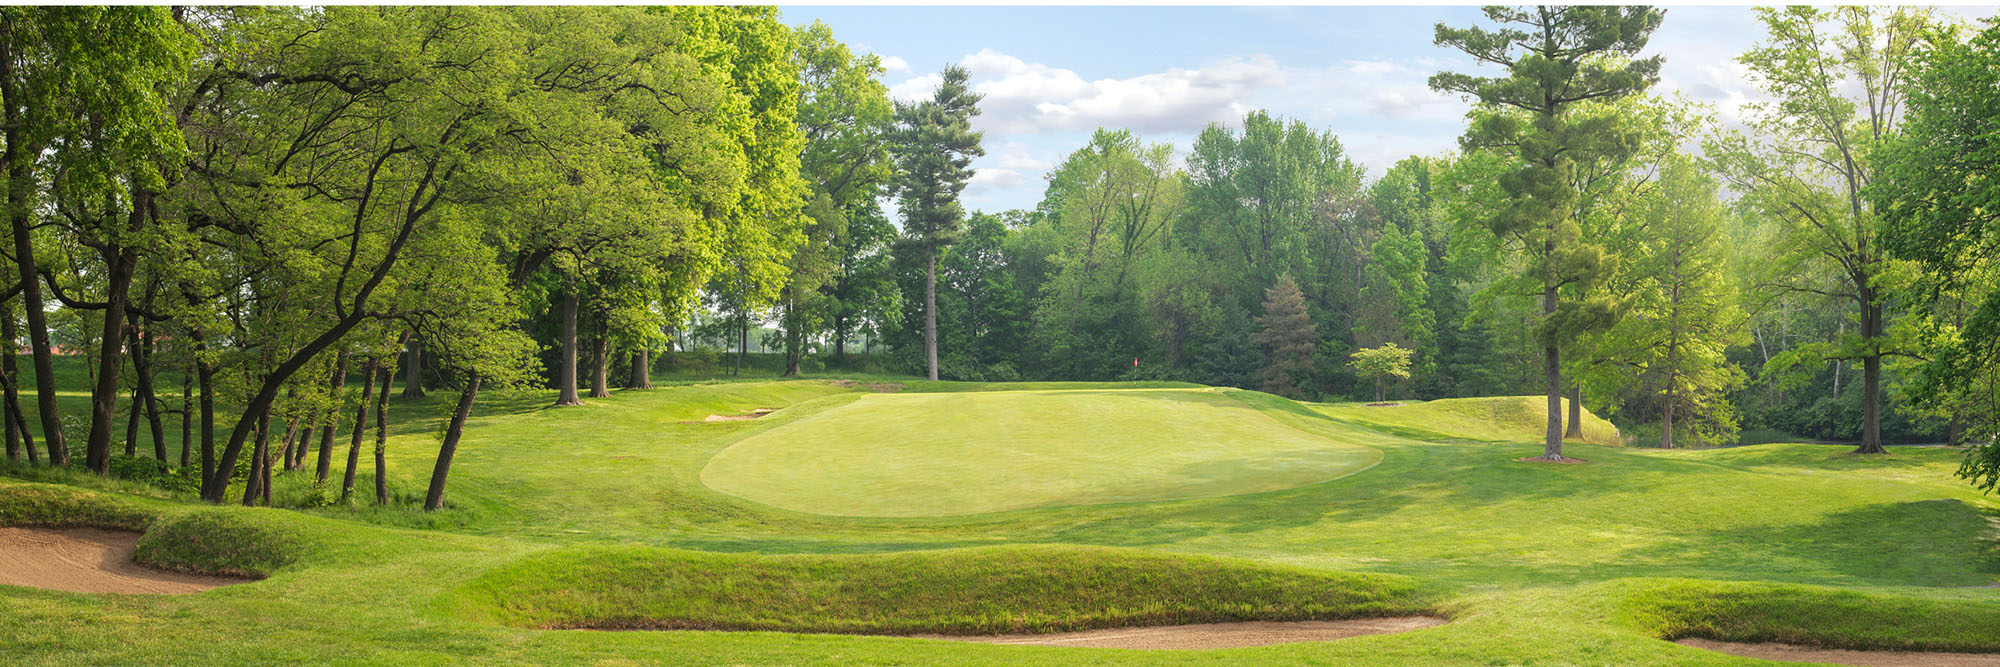 Golf Course Image - St. Louis Country Club No. 2